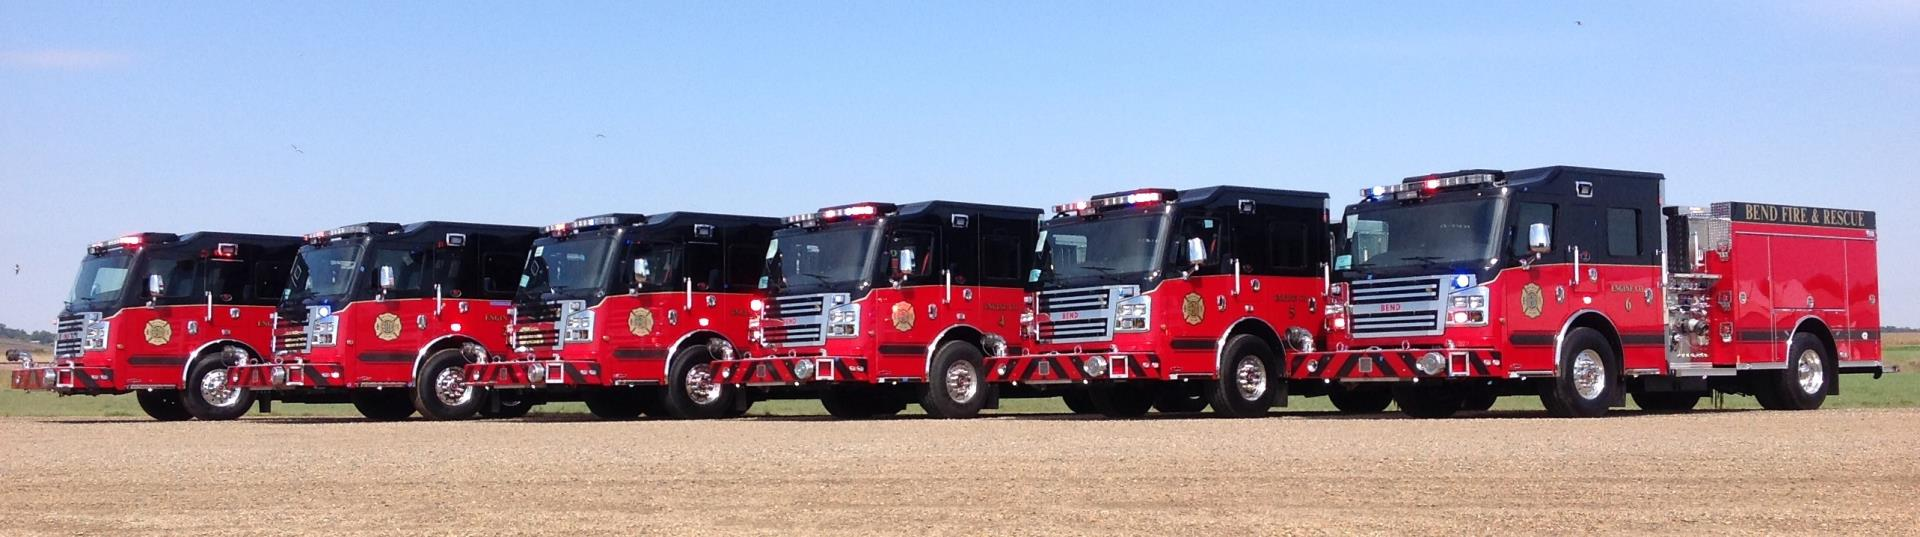 2015 Bend Fire Engines